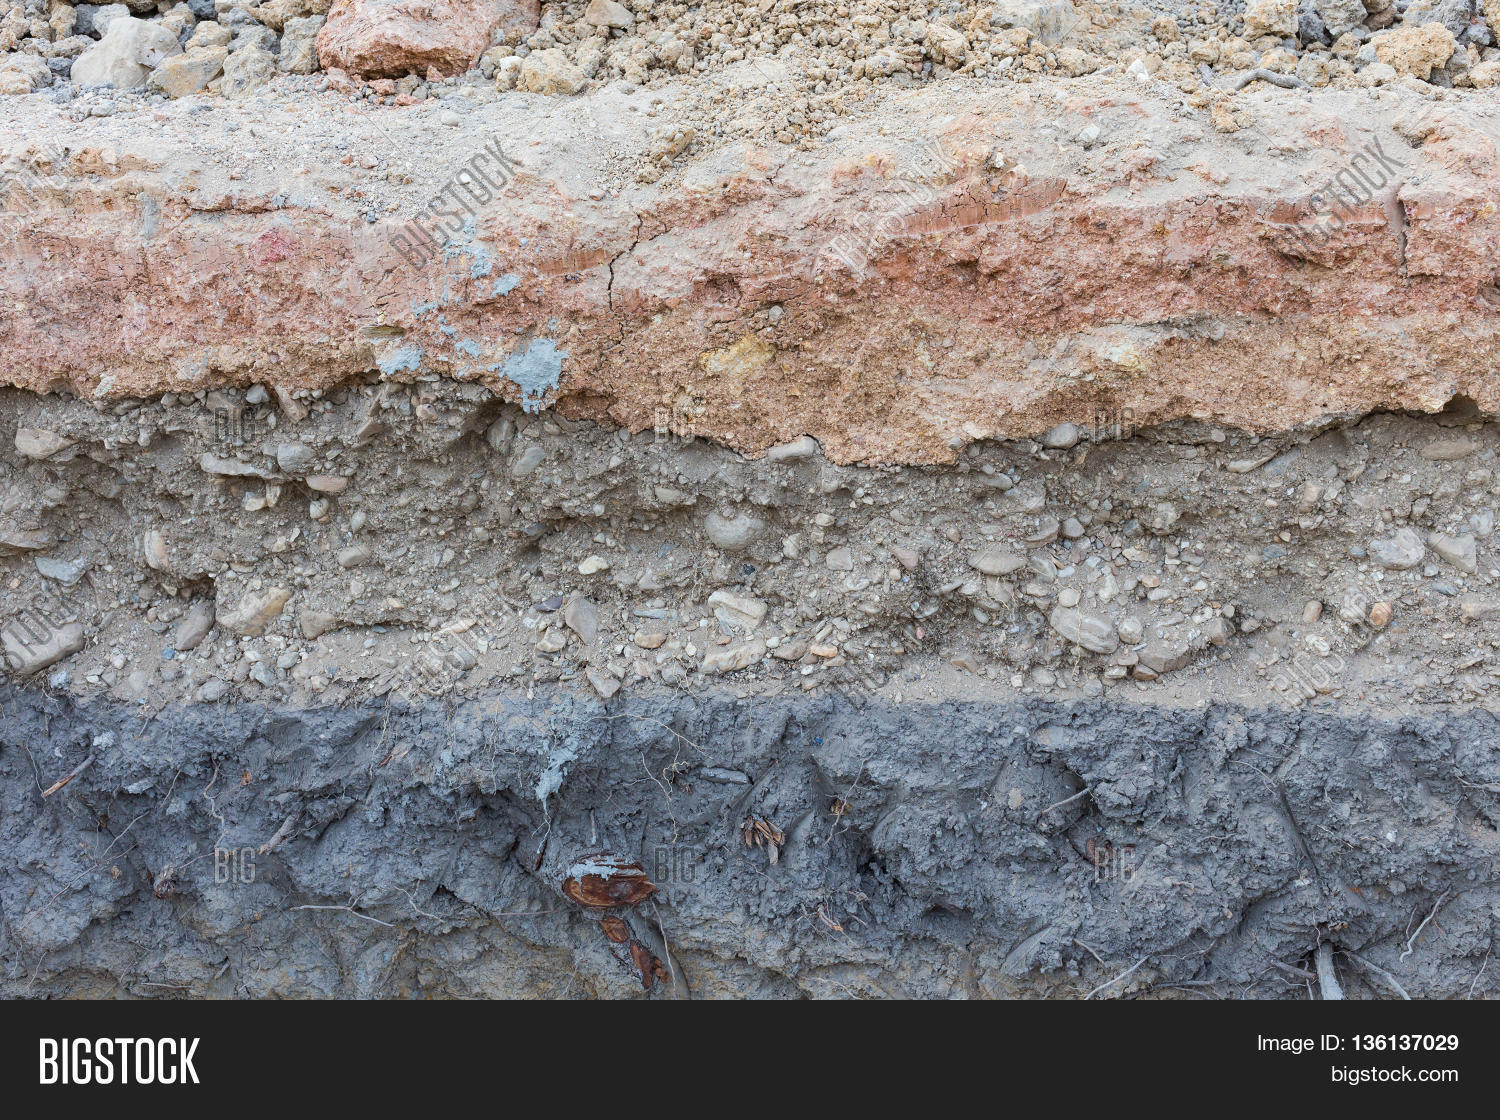 Imagen y foto soil layers underground earth bigstock for Earth soil layers